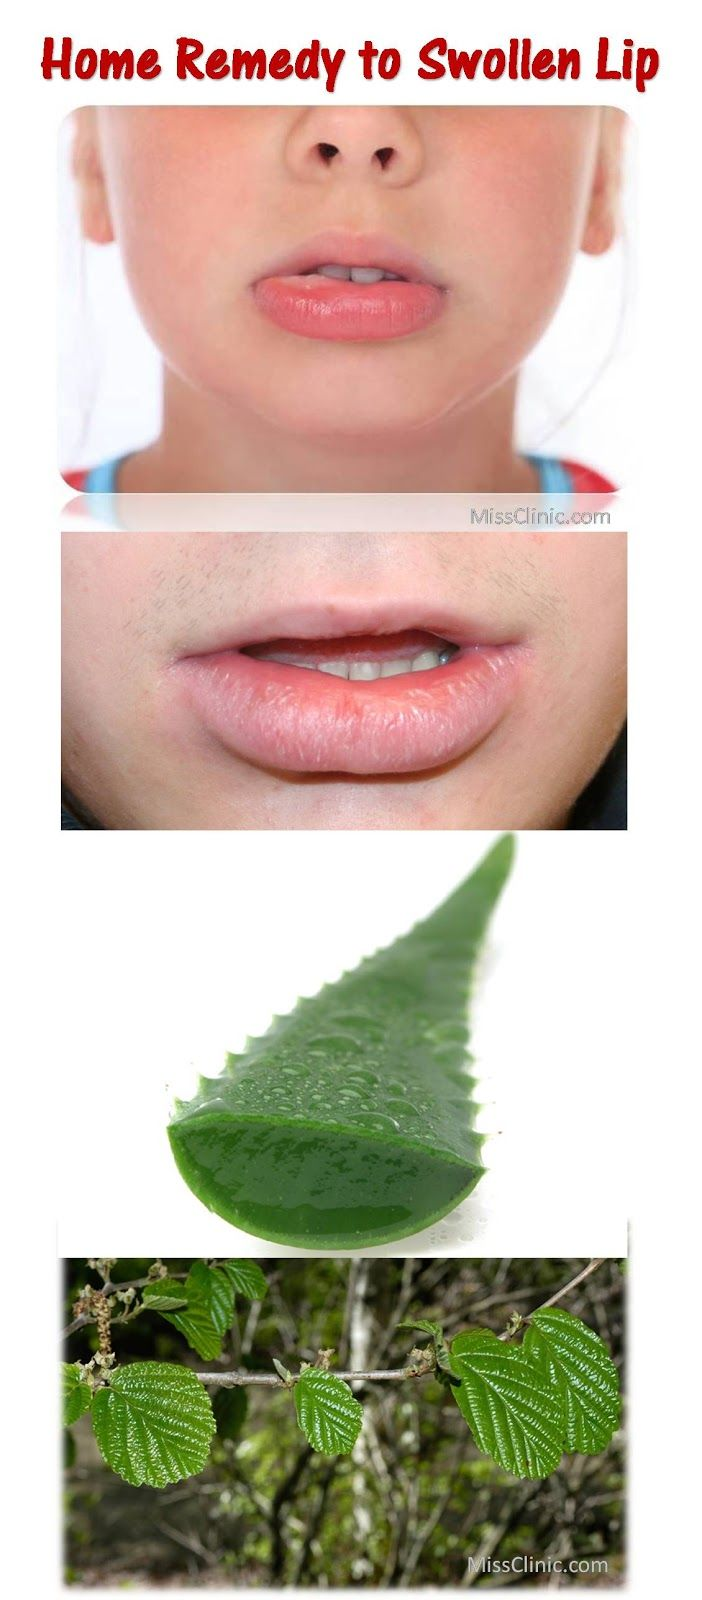 Cause And Remedy To Swollen Bottom Lip Remedies